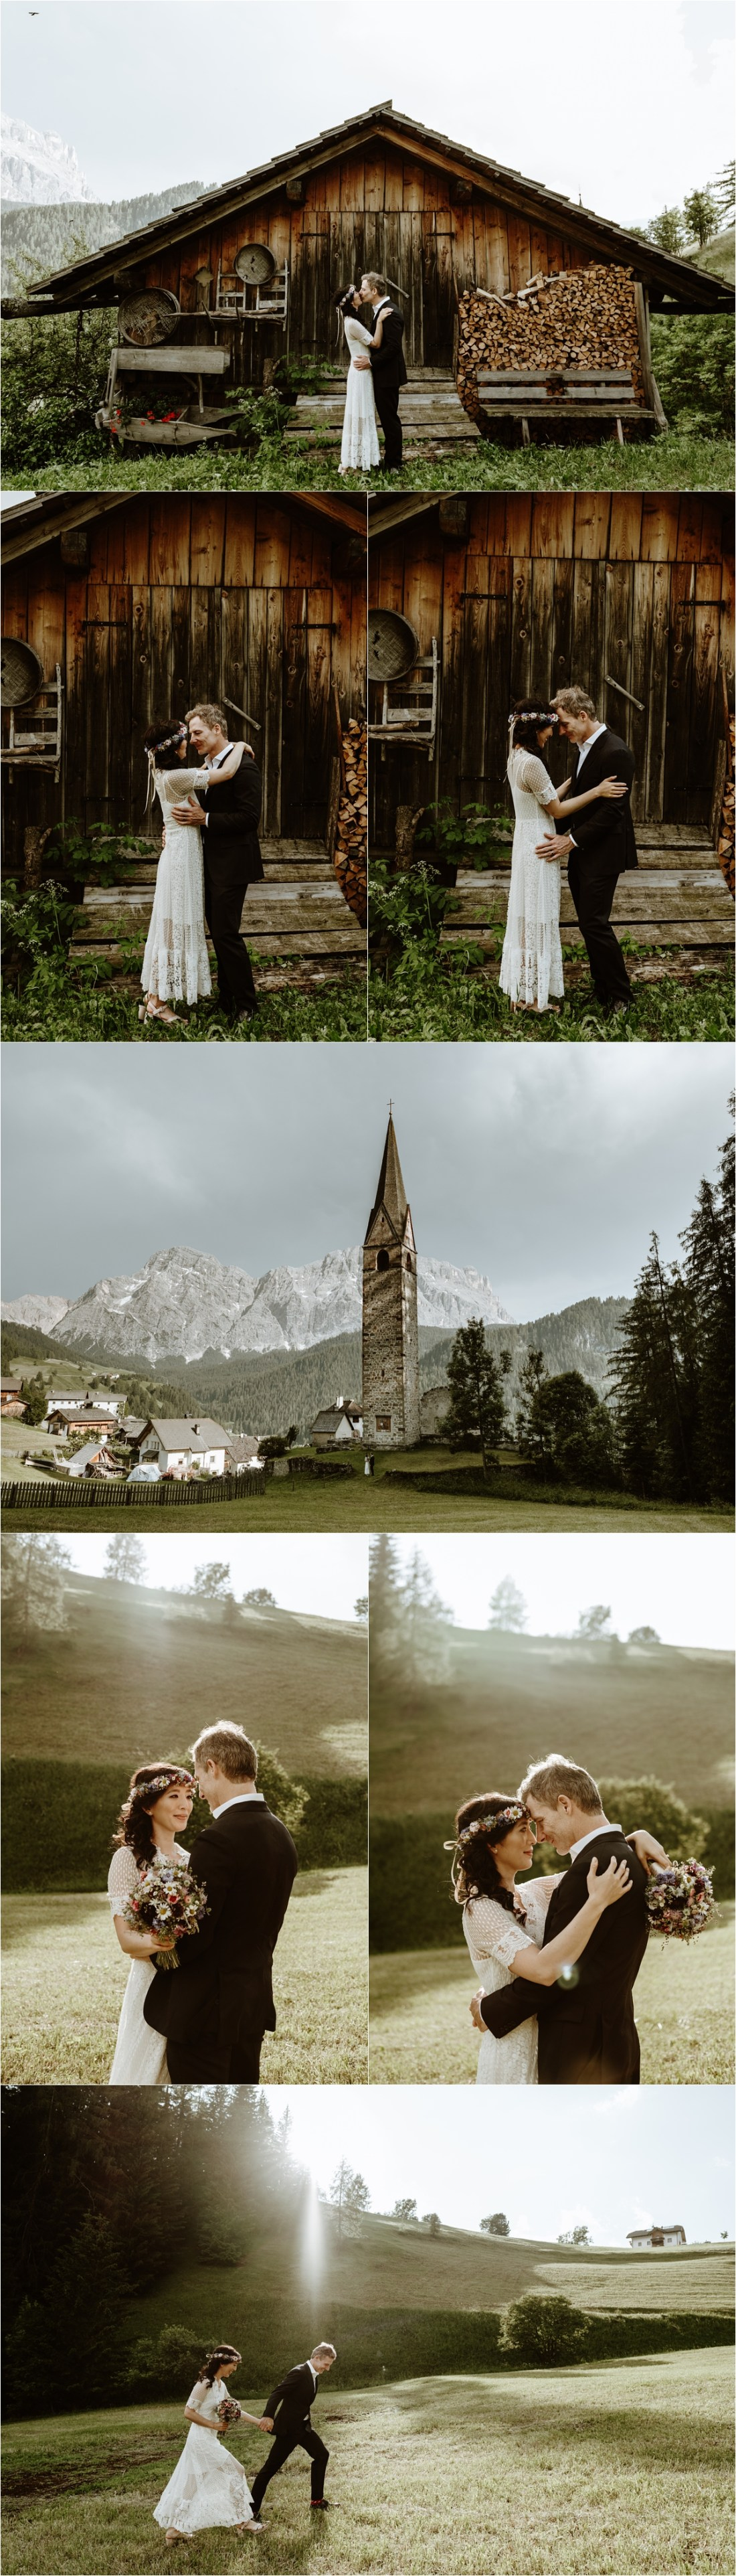 Bride and groom pictures in the Dolomites mountains. Photo by Wild Connections Photography